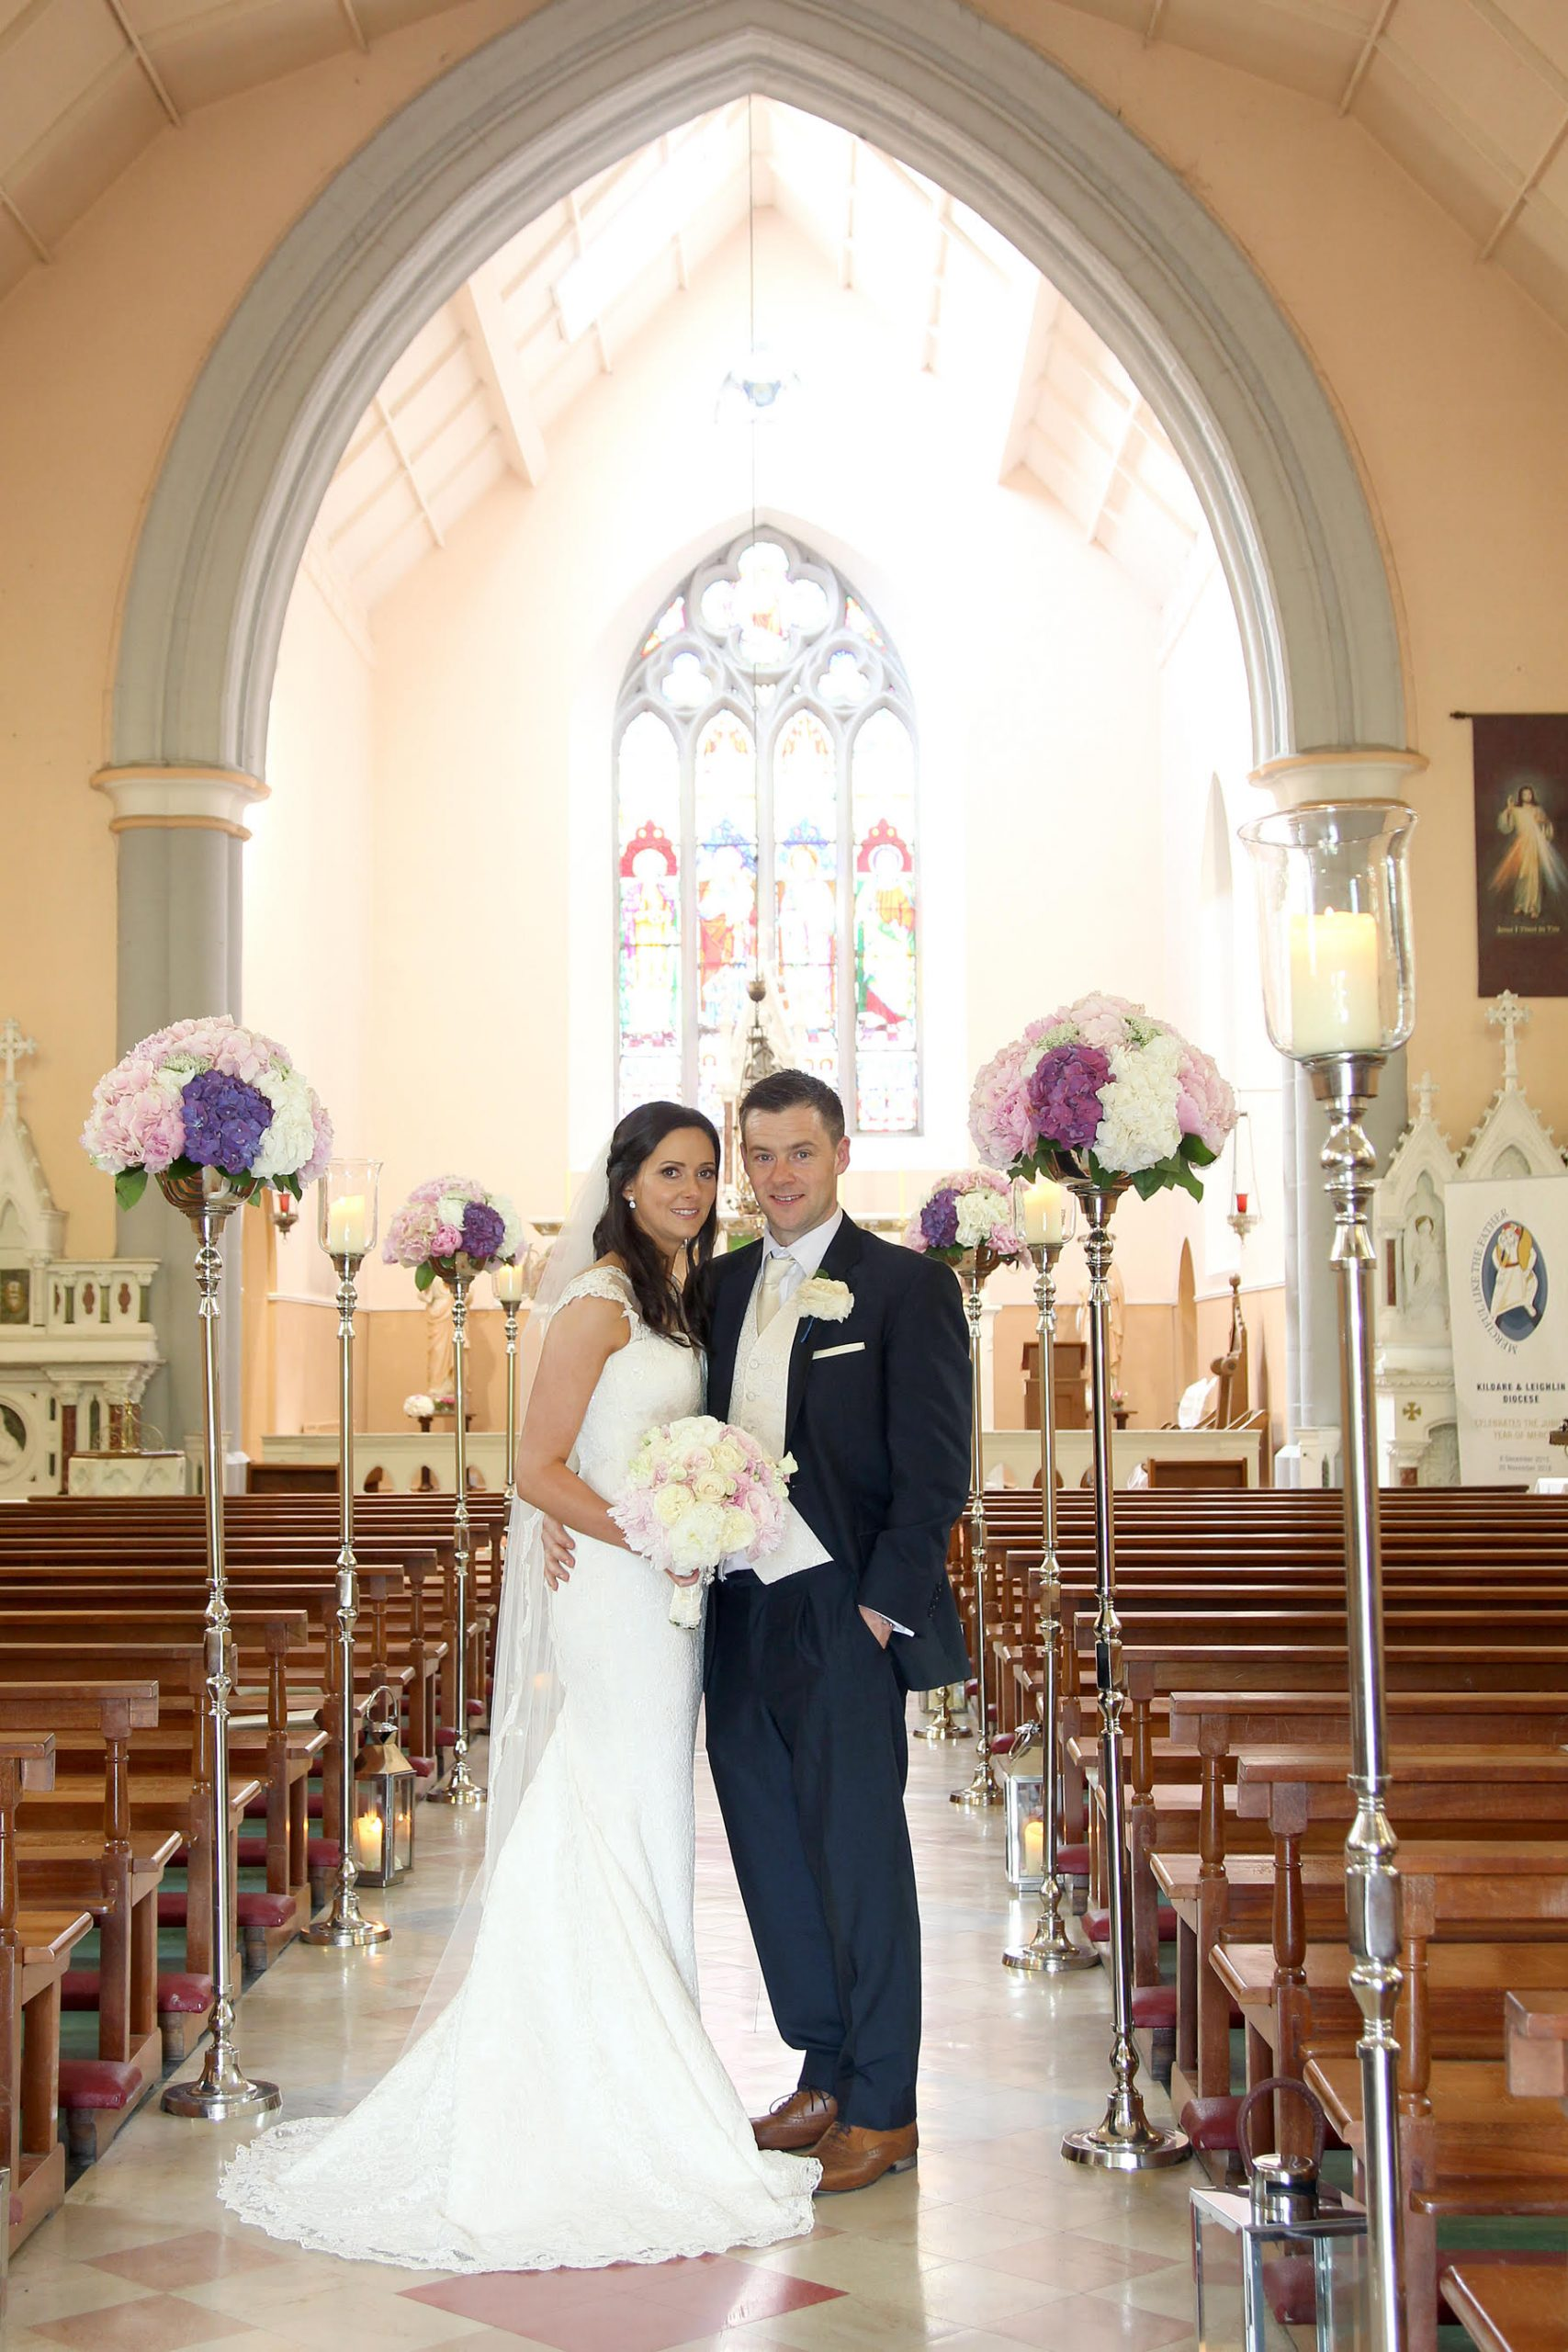 Church, Civil Ceremony And Same-sex Marriage Decor Services